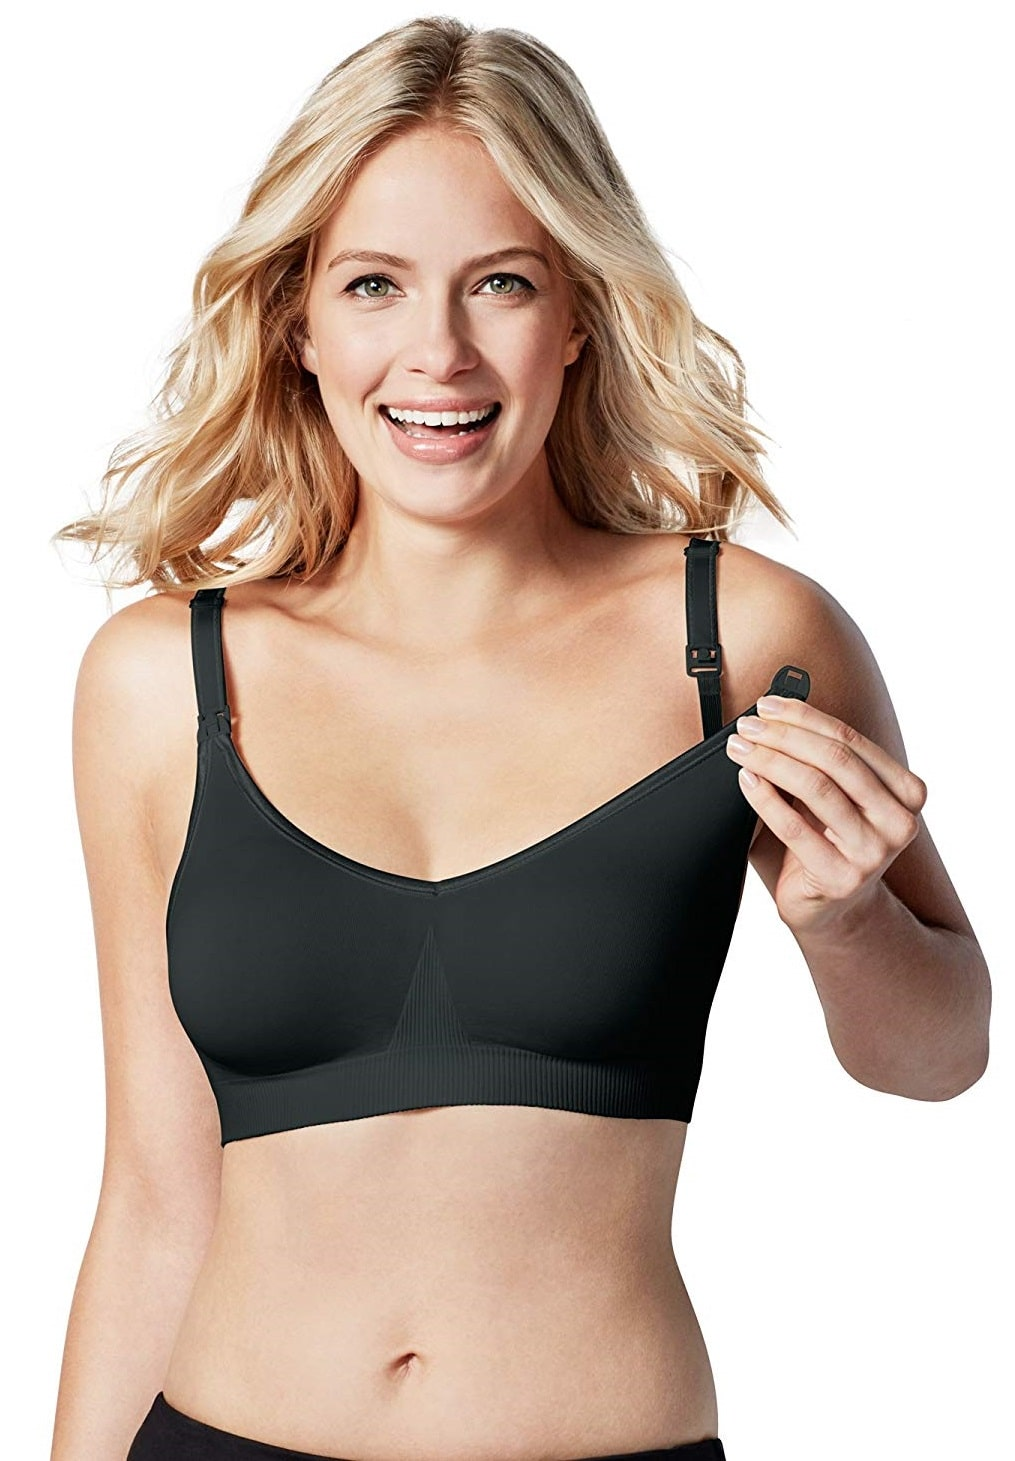 70163ed6ac823 9 Best Nursing Bras for Breastfeeding - A Mom's Buying Guide of 2019